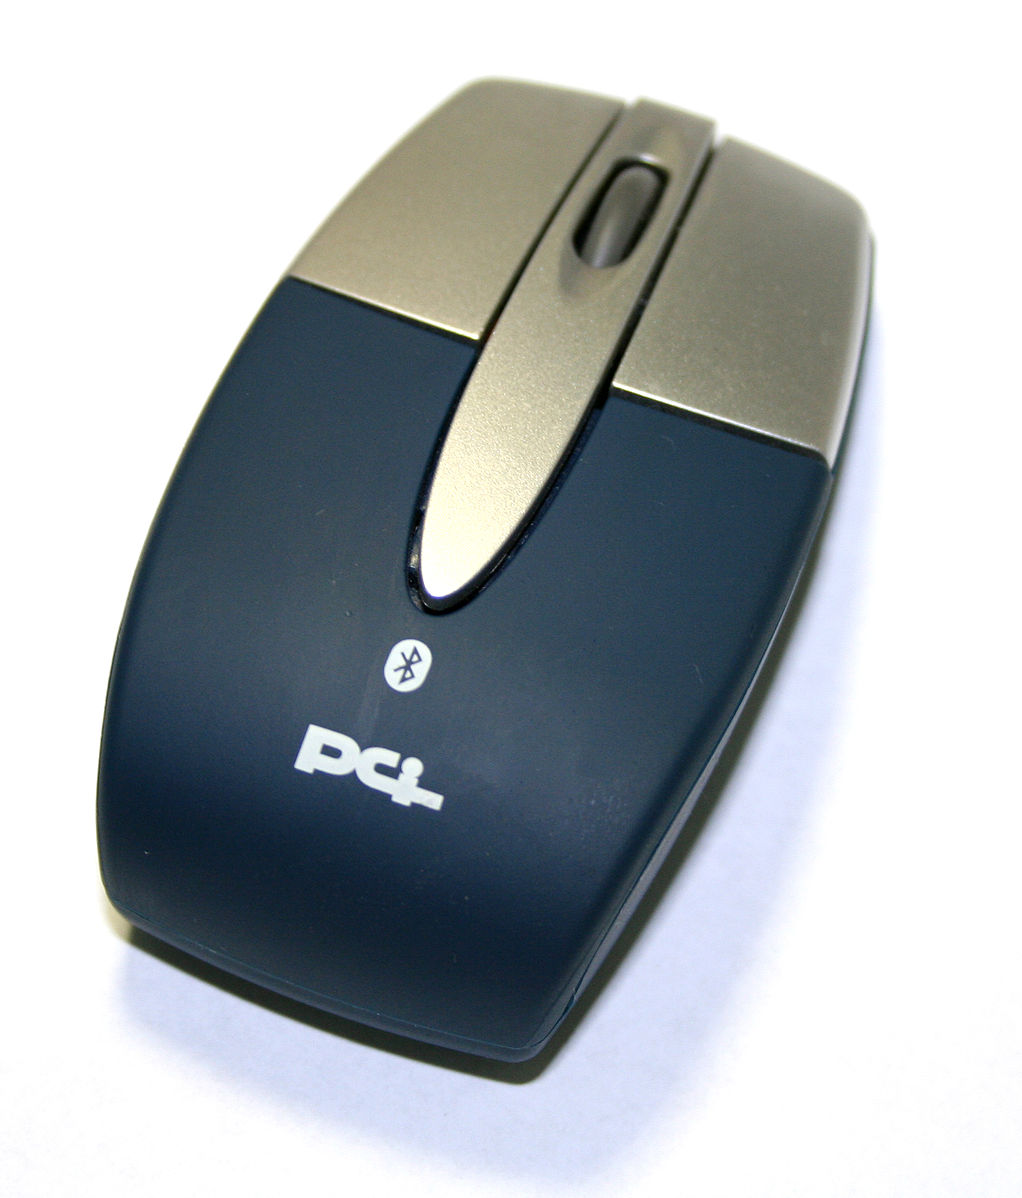 Difference Between USB and Bluetooth Mouse